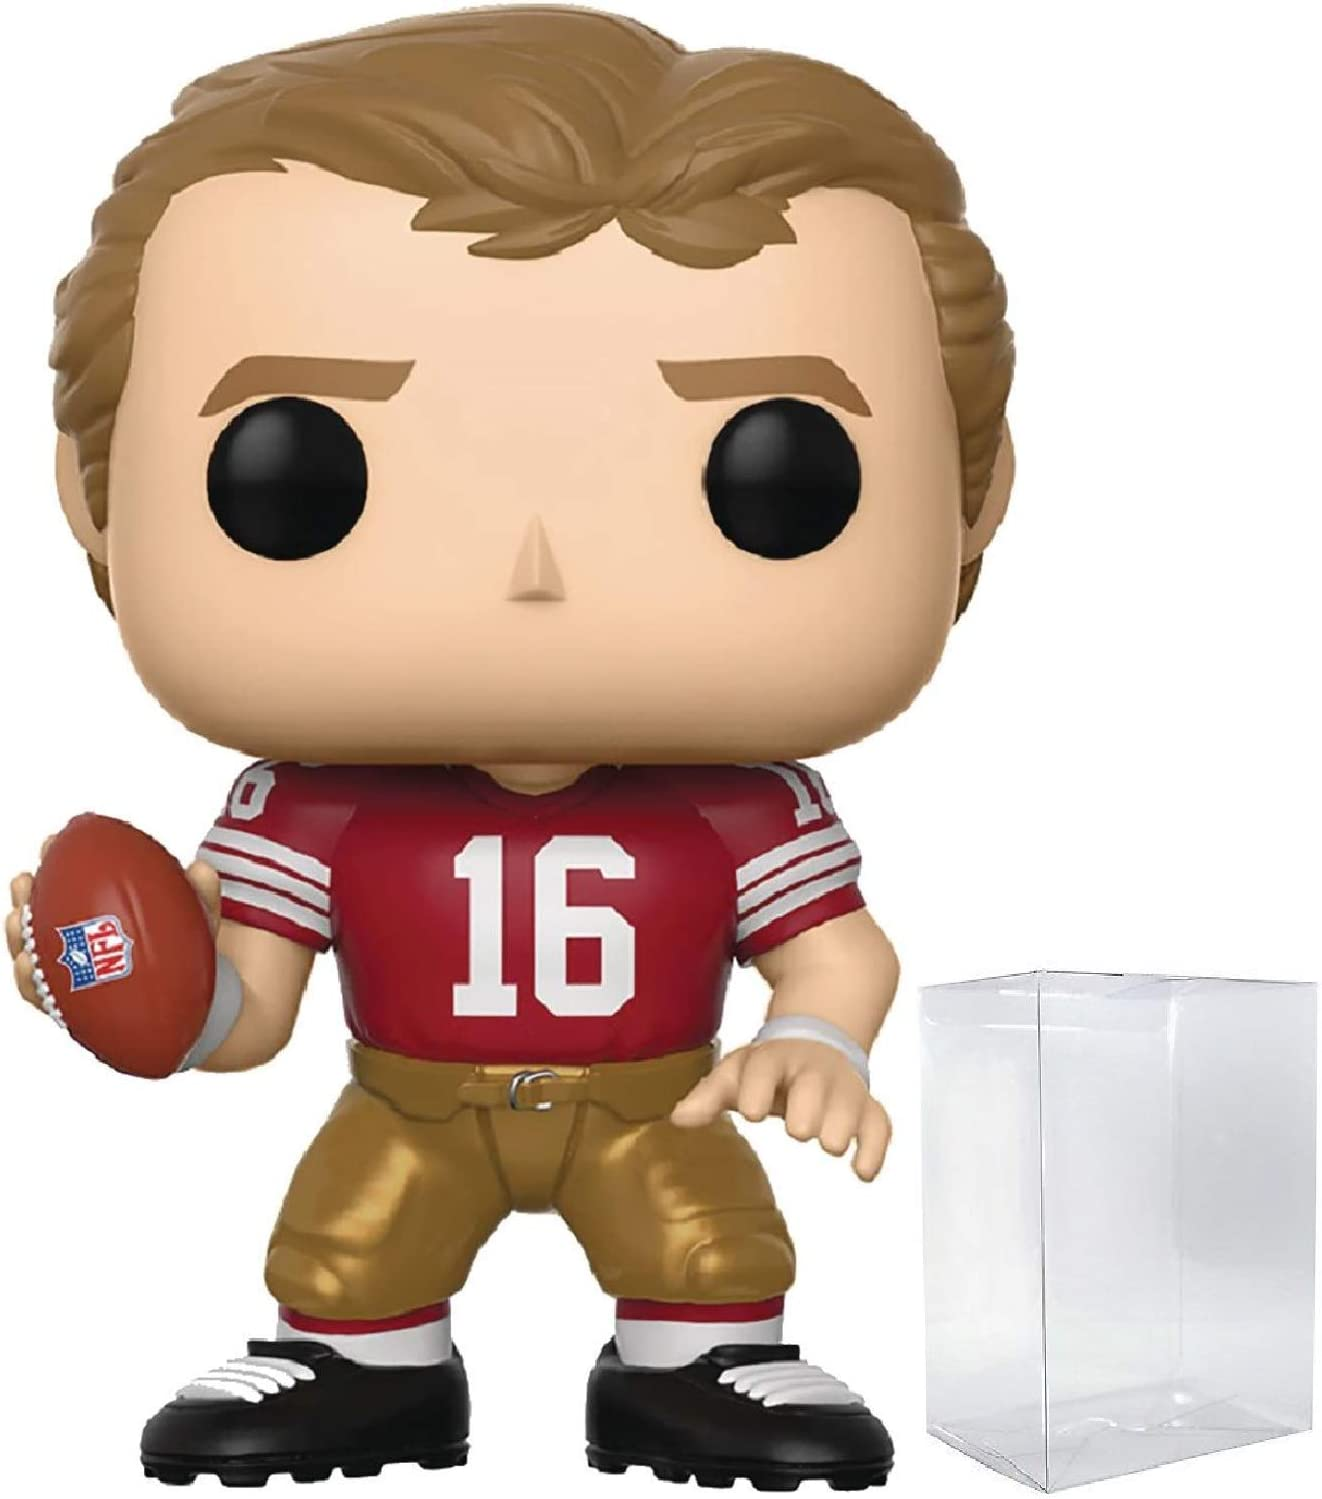 Pop Vinyl Funko NFL Stars Niners Richard Sherman Figure